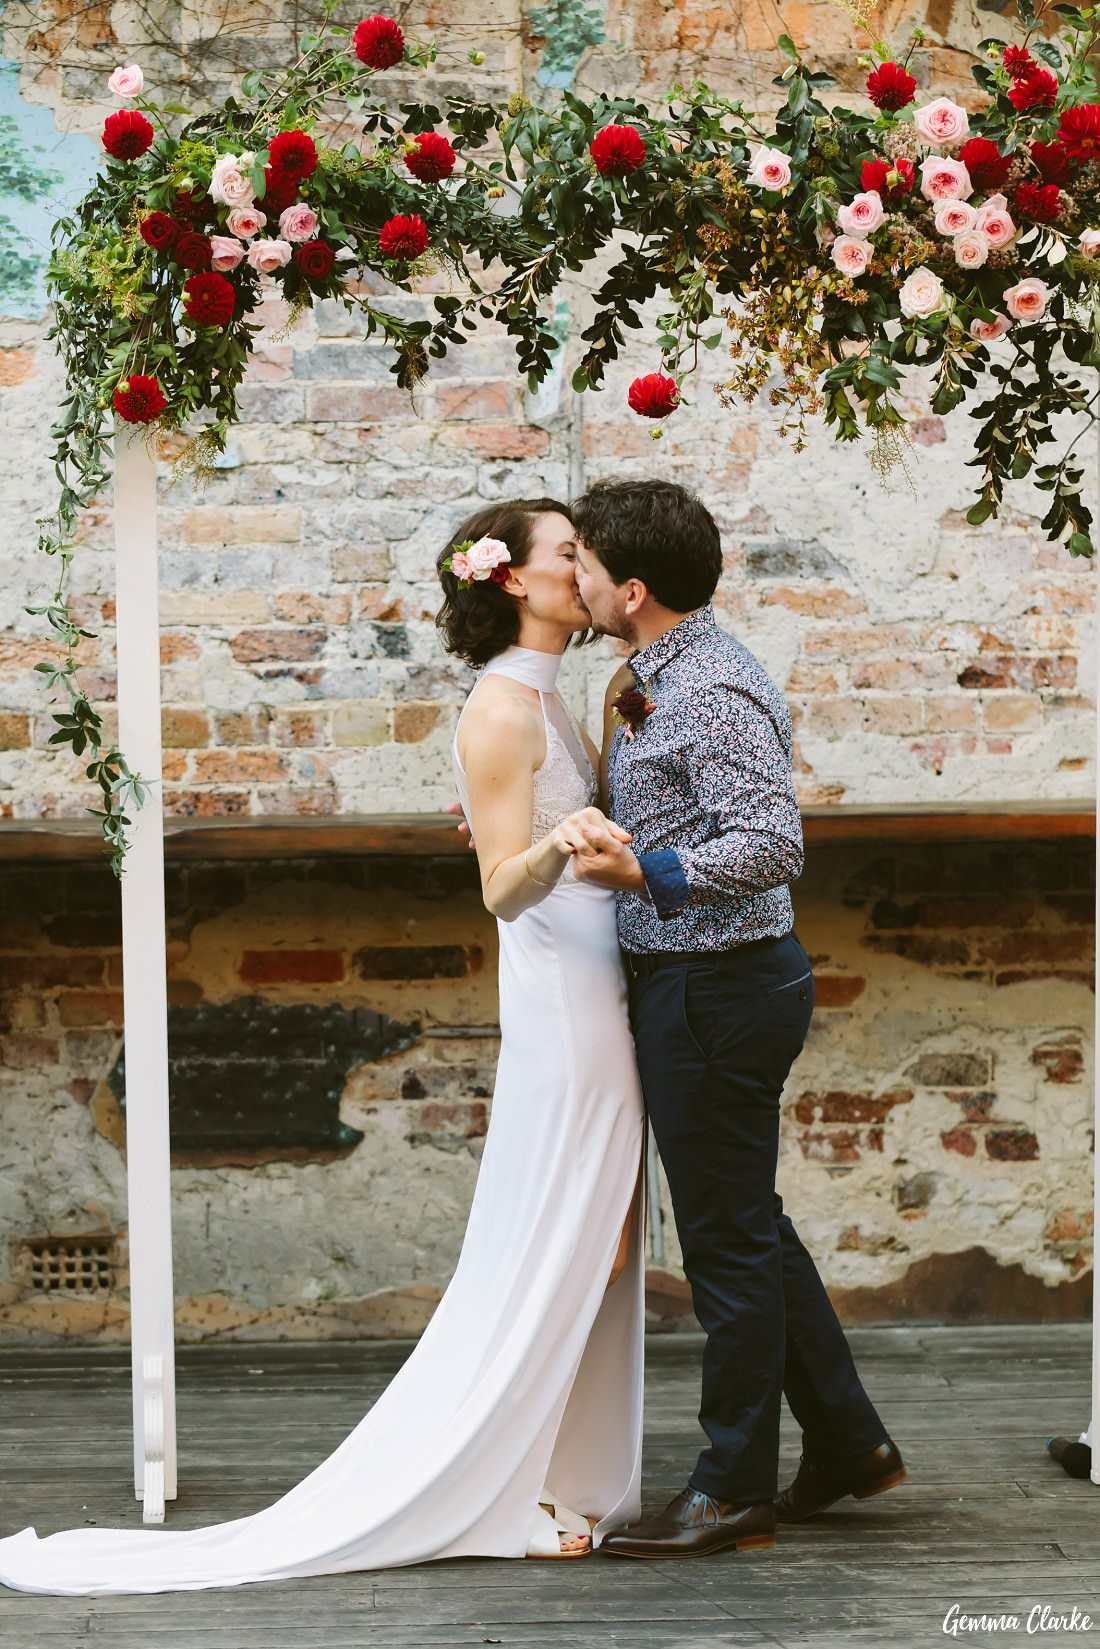 Bride and Groom's first kiss during the ceremony with a brick wall feature wall and red floral arbor at this sydney pub wedding